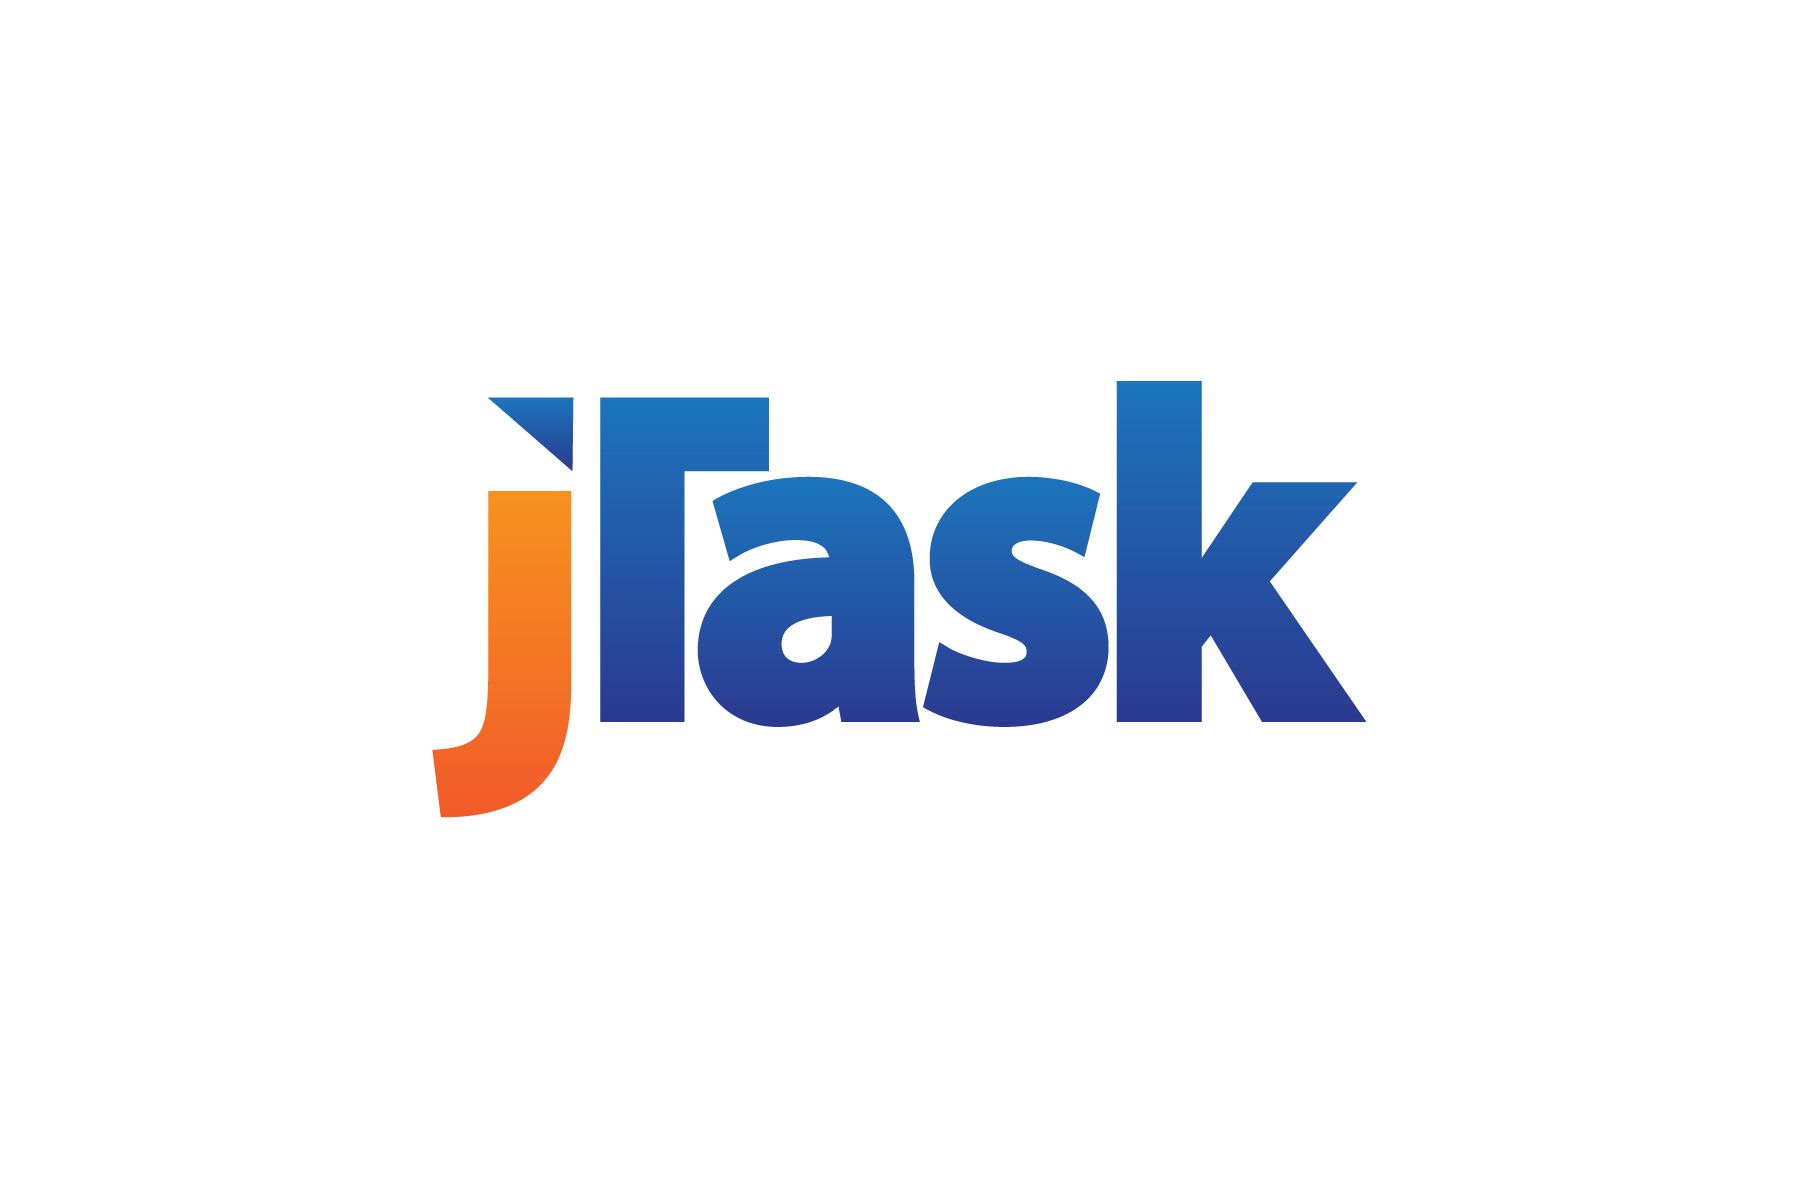 Help jTask with a new logo